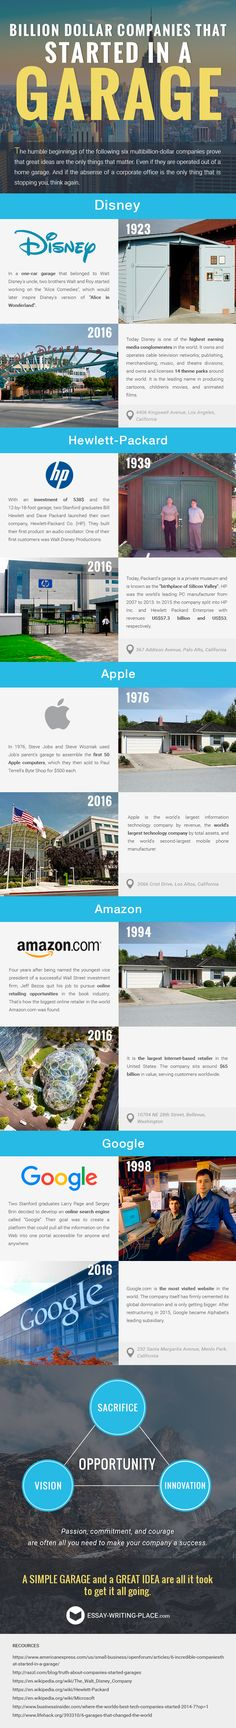 Billion Dollar Companies That Started in Garage #Infographic #Business #Entrepreneur